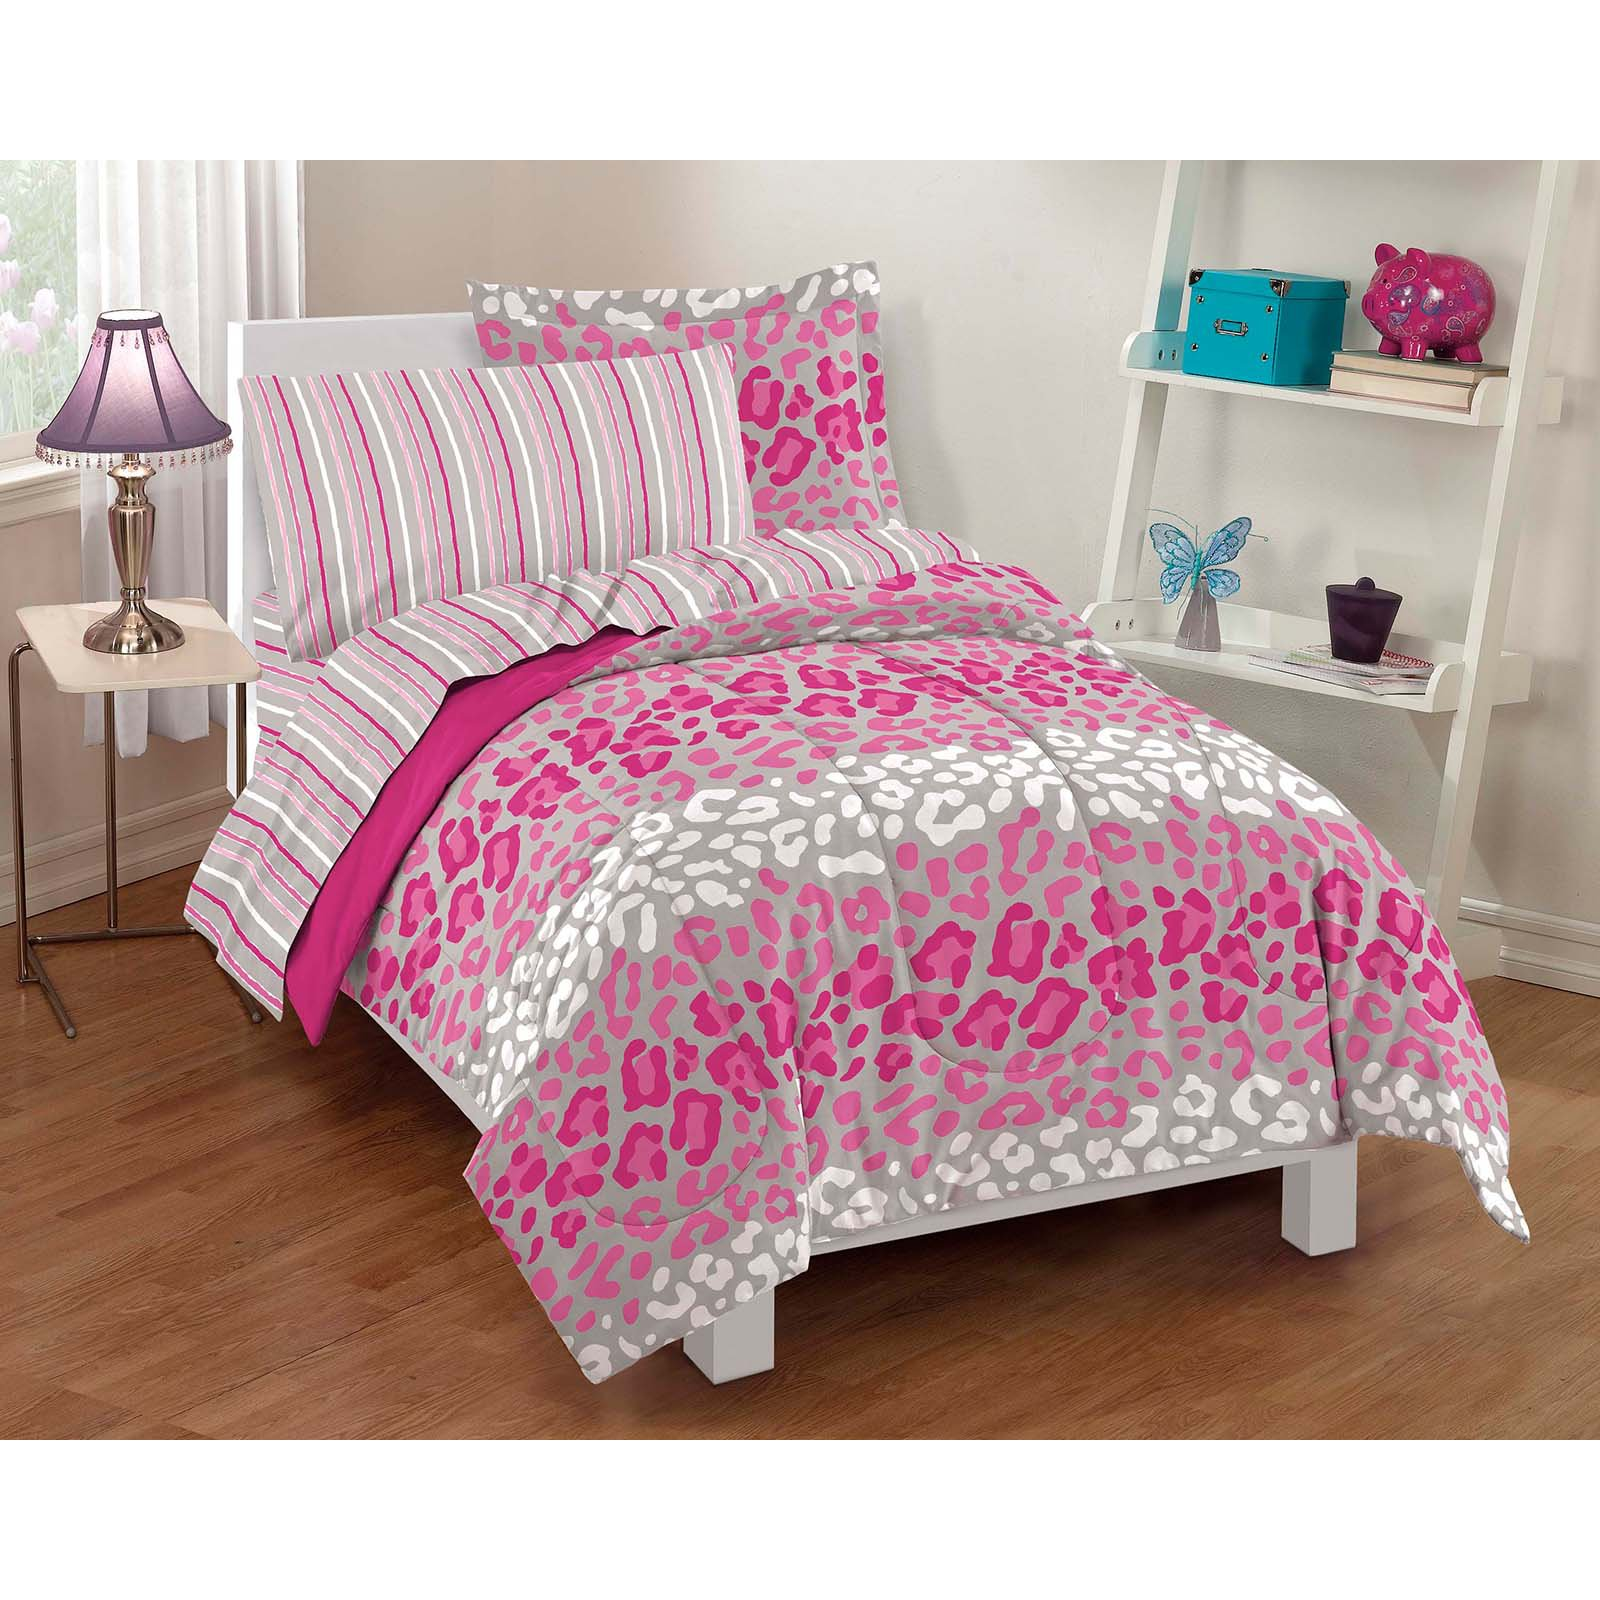 Dream Factory Safari Girl Bedding Comfor